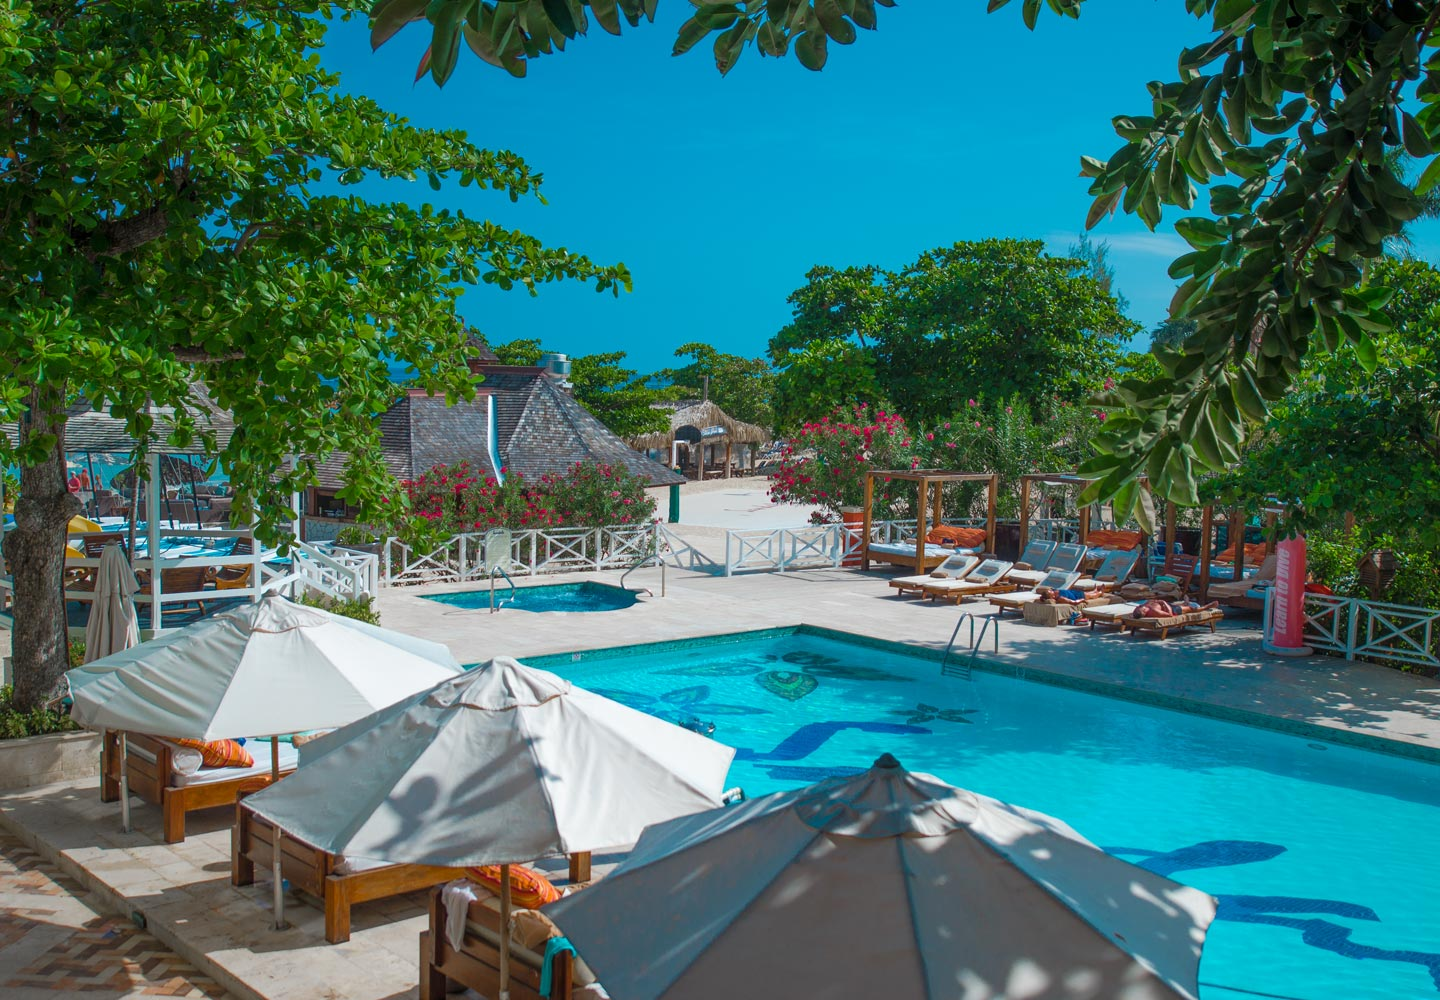 Travel Agency All-Inclusive Resort Sandals Montego Bay 018